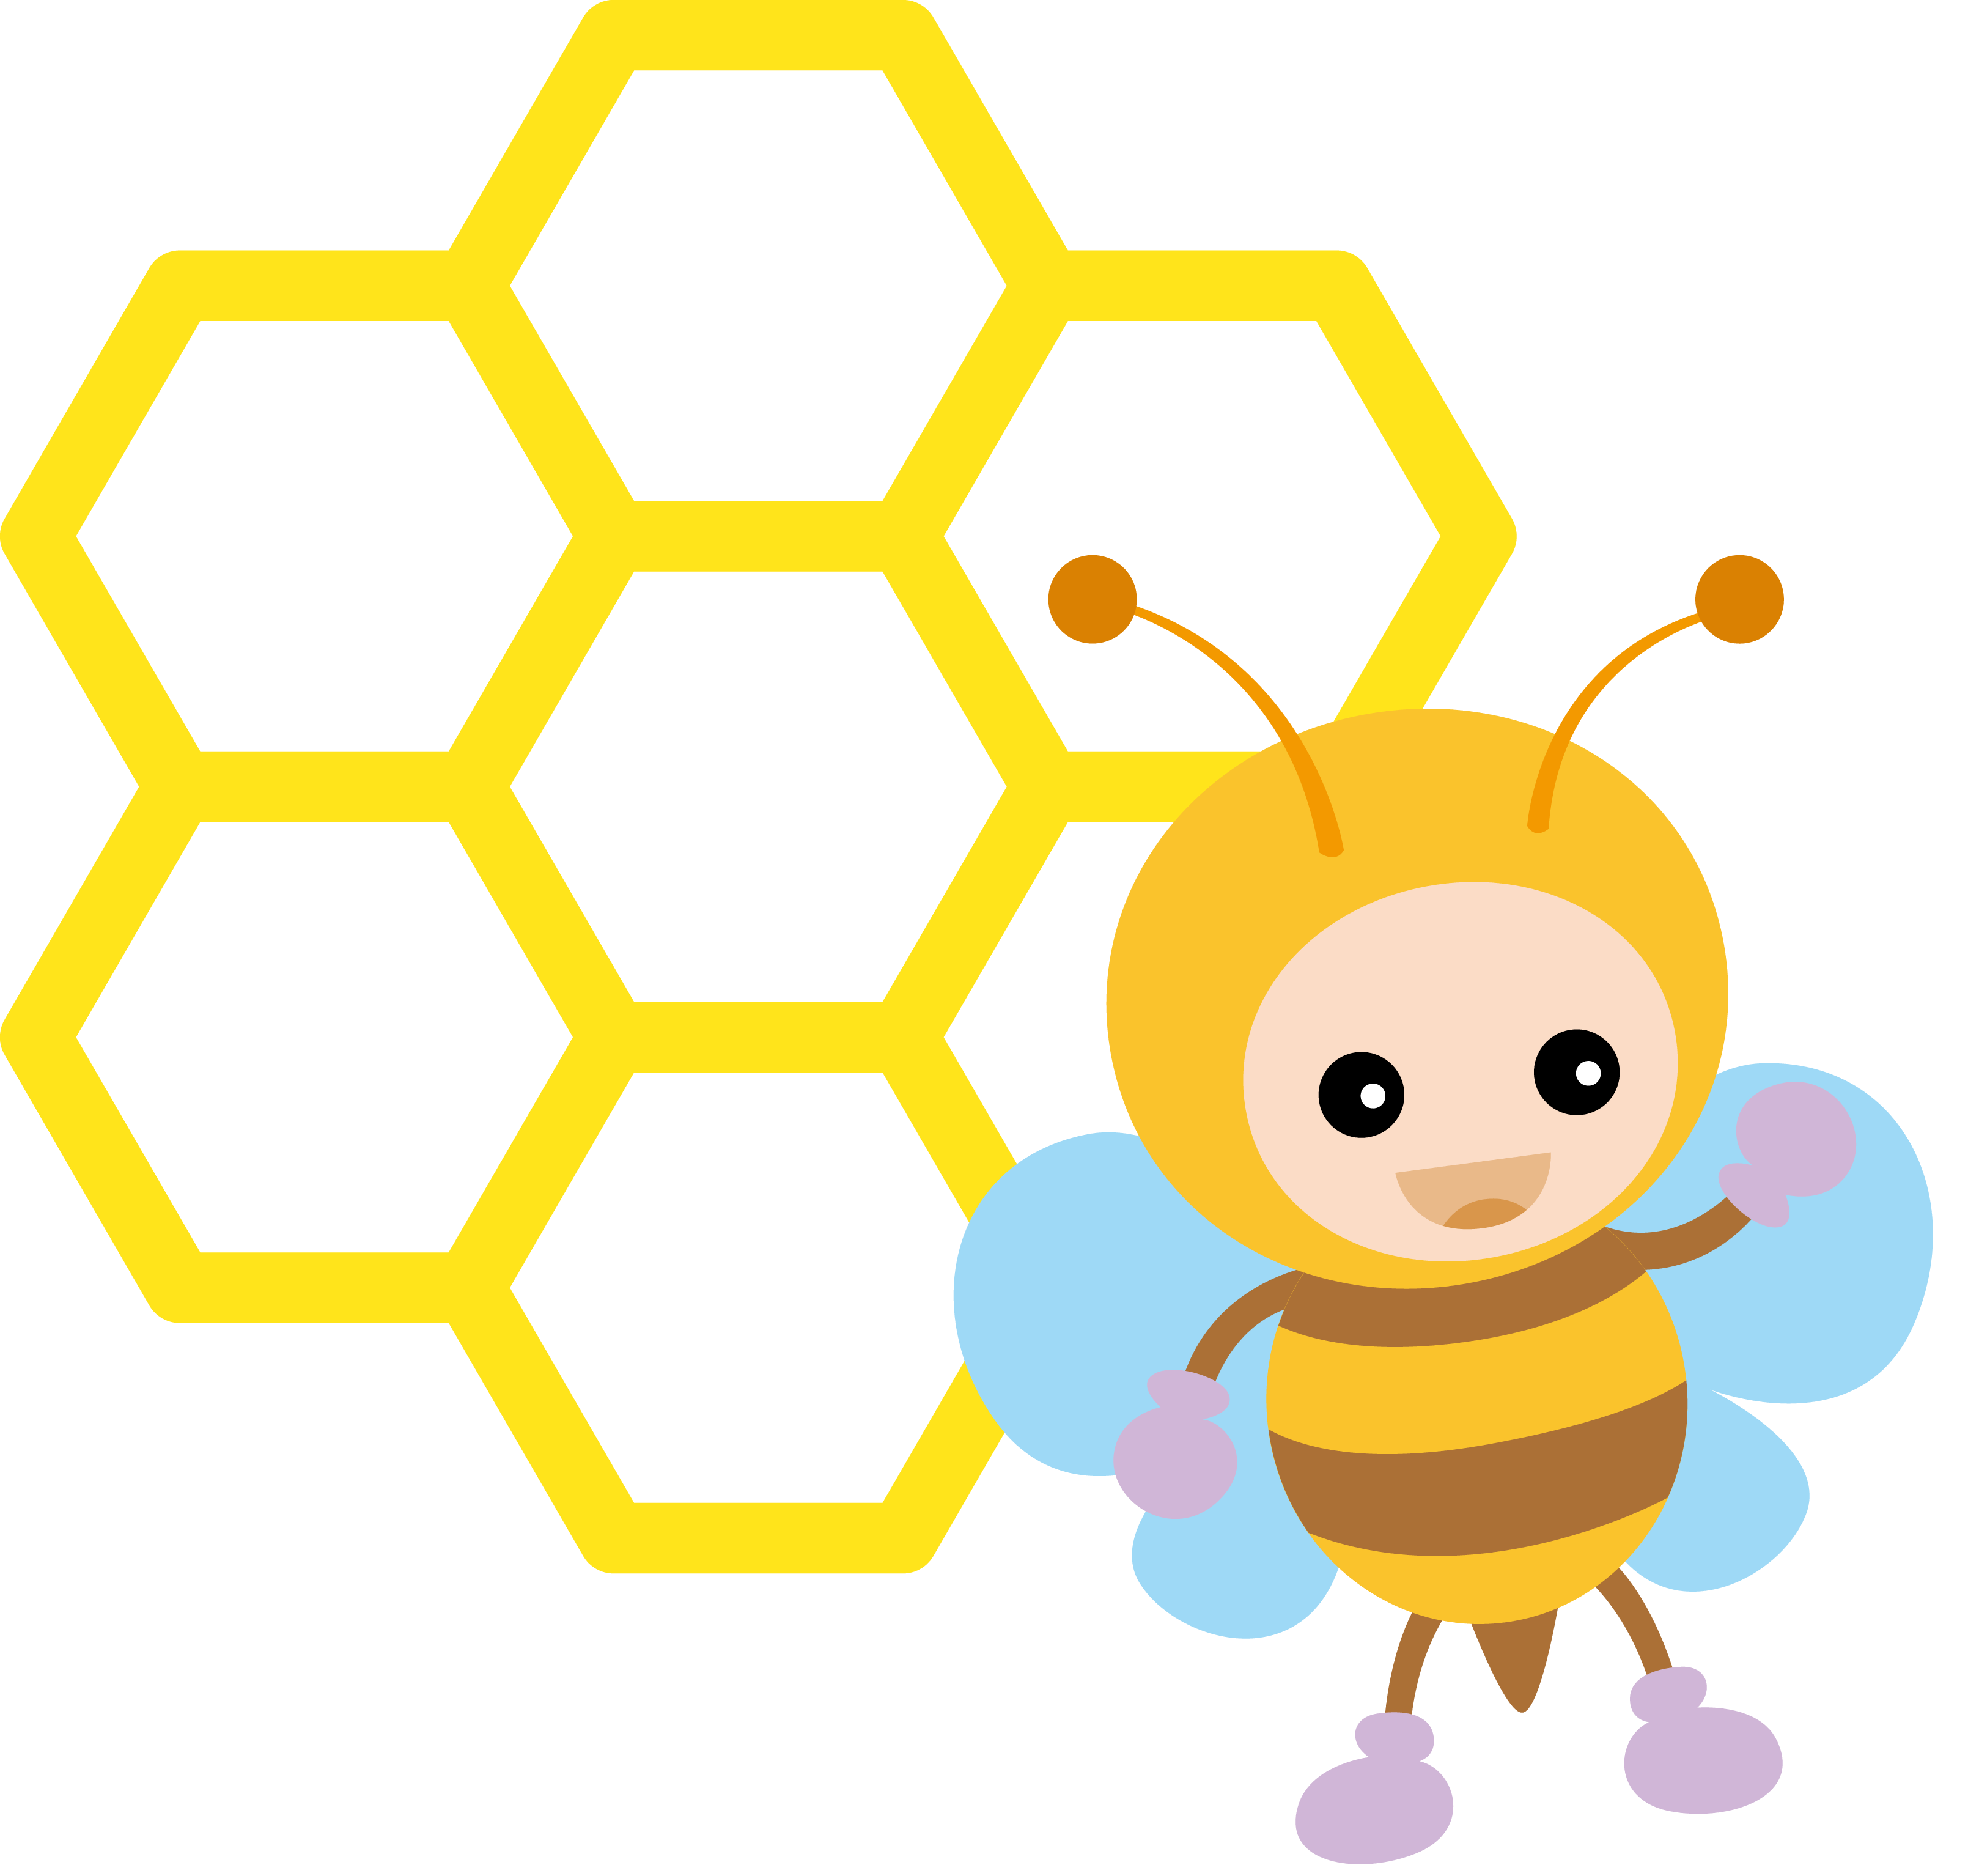 Bee on apple blossom clipart png Photo by @daniellemoraesfalcao - Minus | รูปภาพงาน | Pinterest ... png